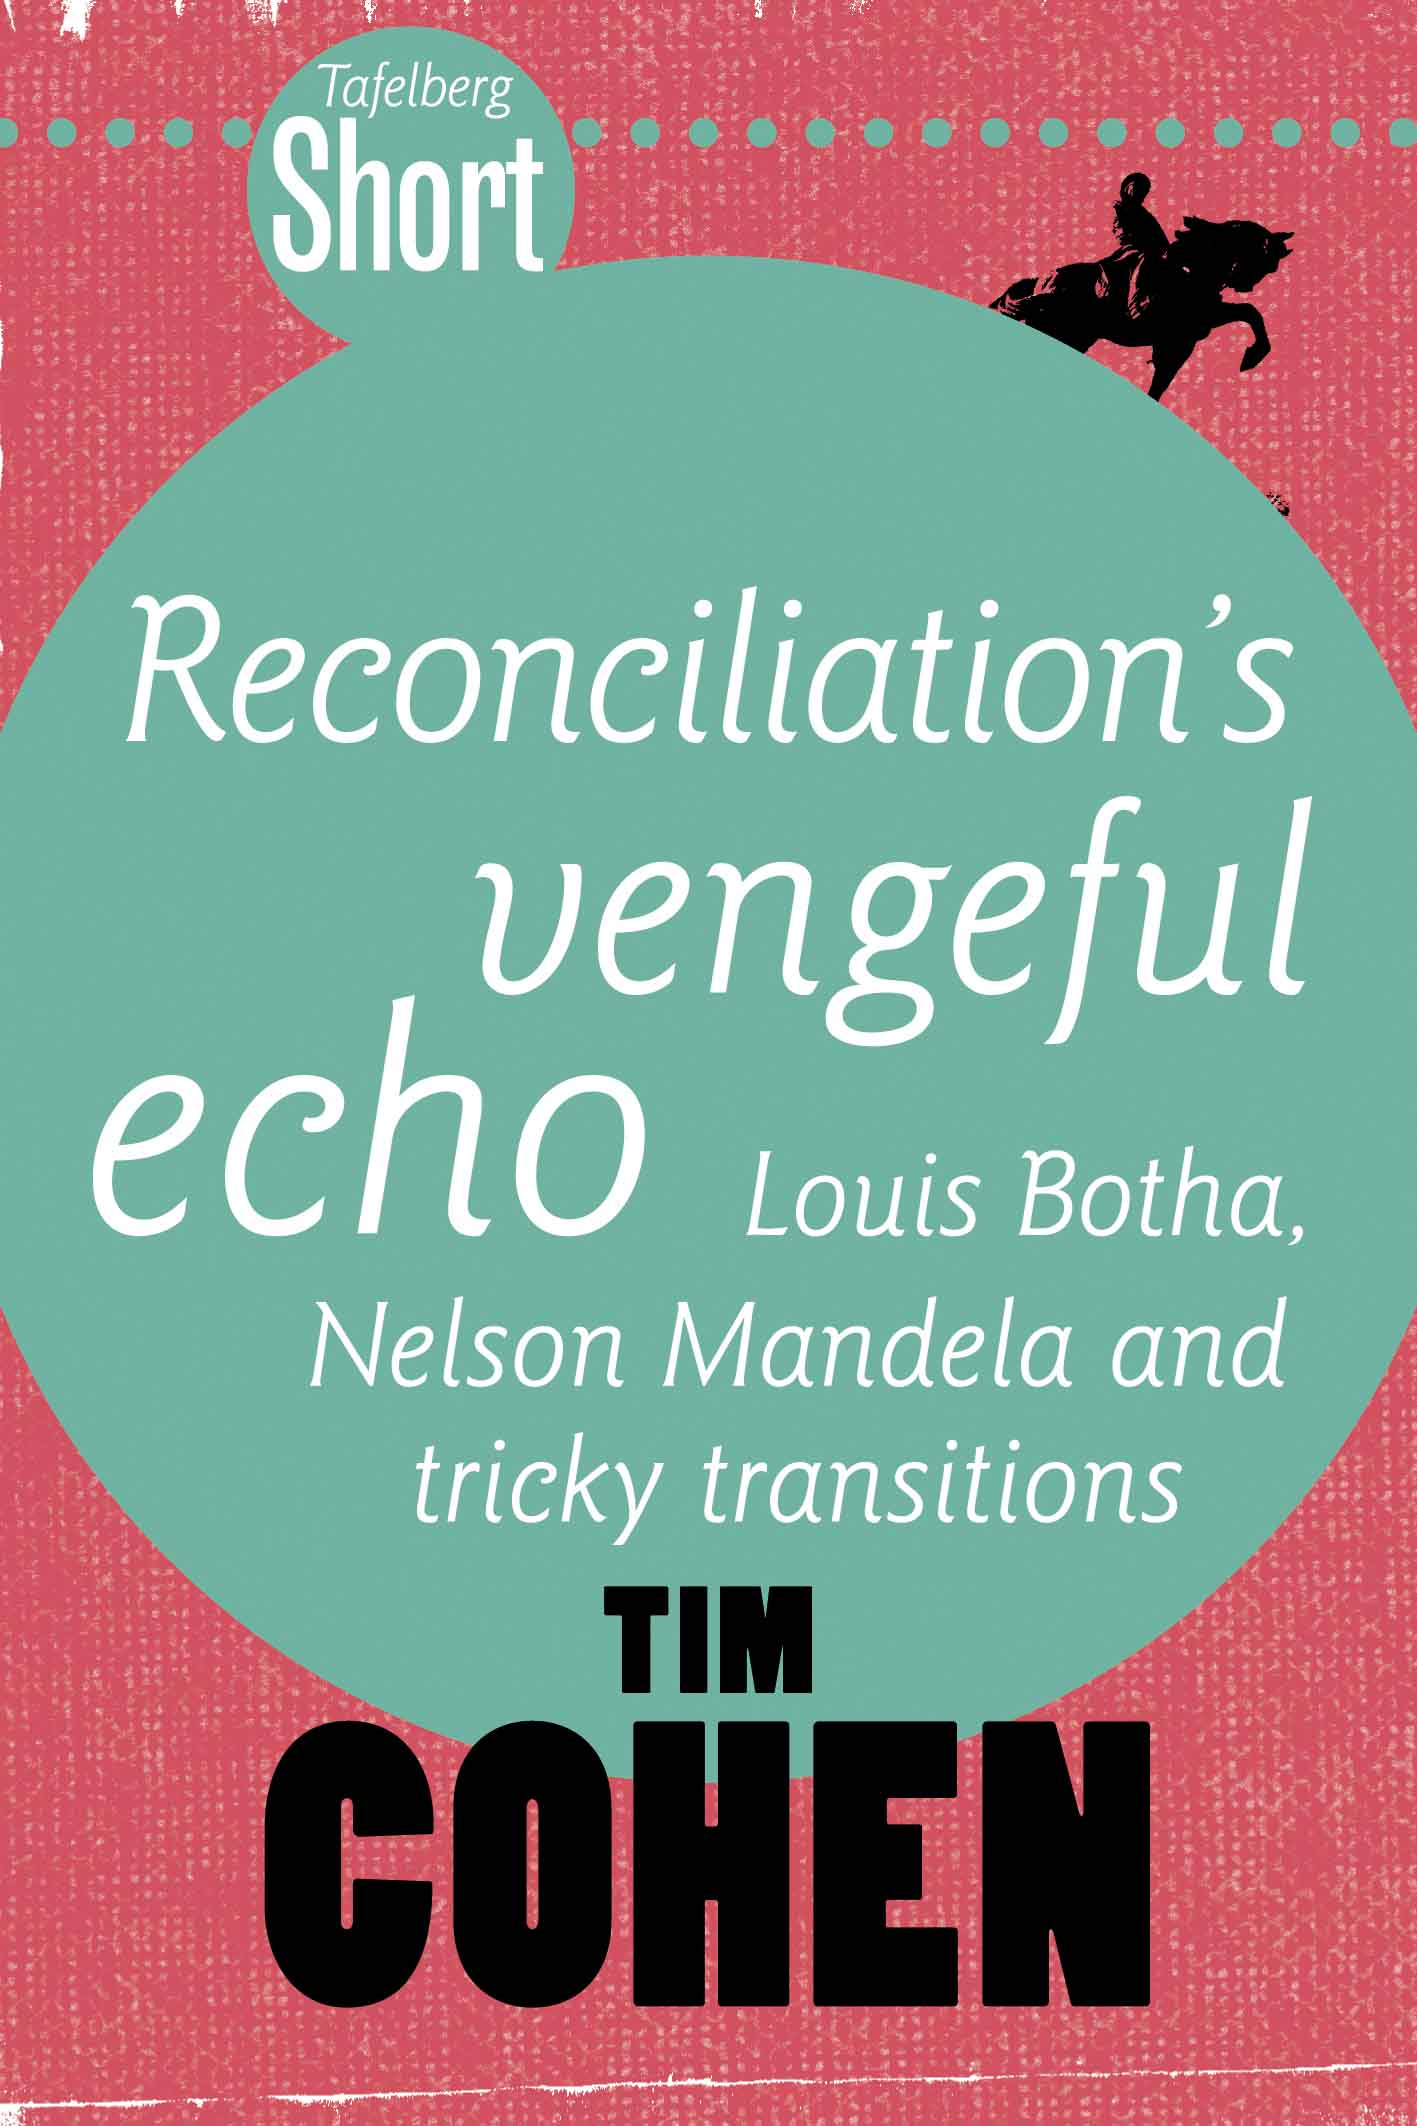 Tafelberg Short: Reconciliation's vengeful echo